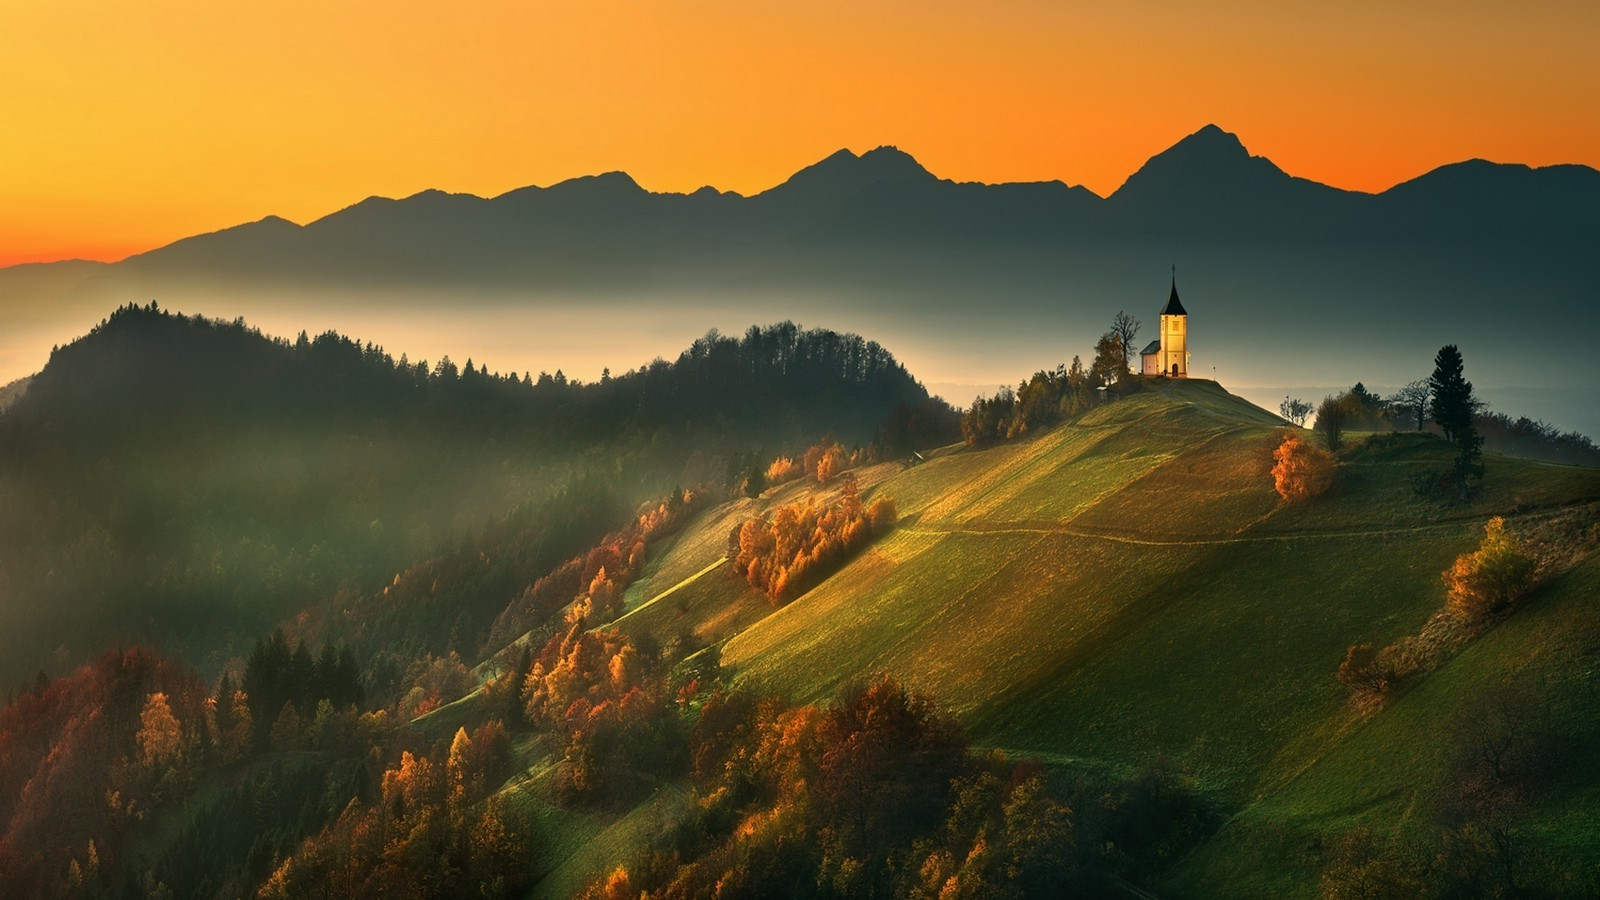 Fall Wallpaper For Large Monitors Church On Mountaintop At Sunset Wallpaper And Background